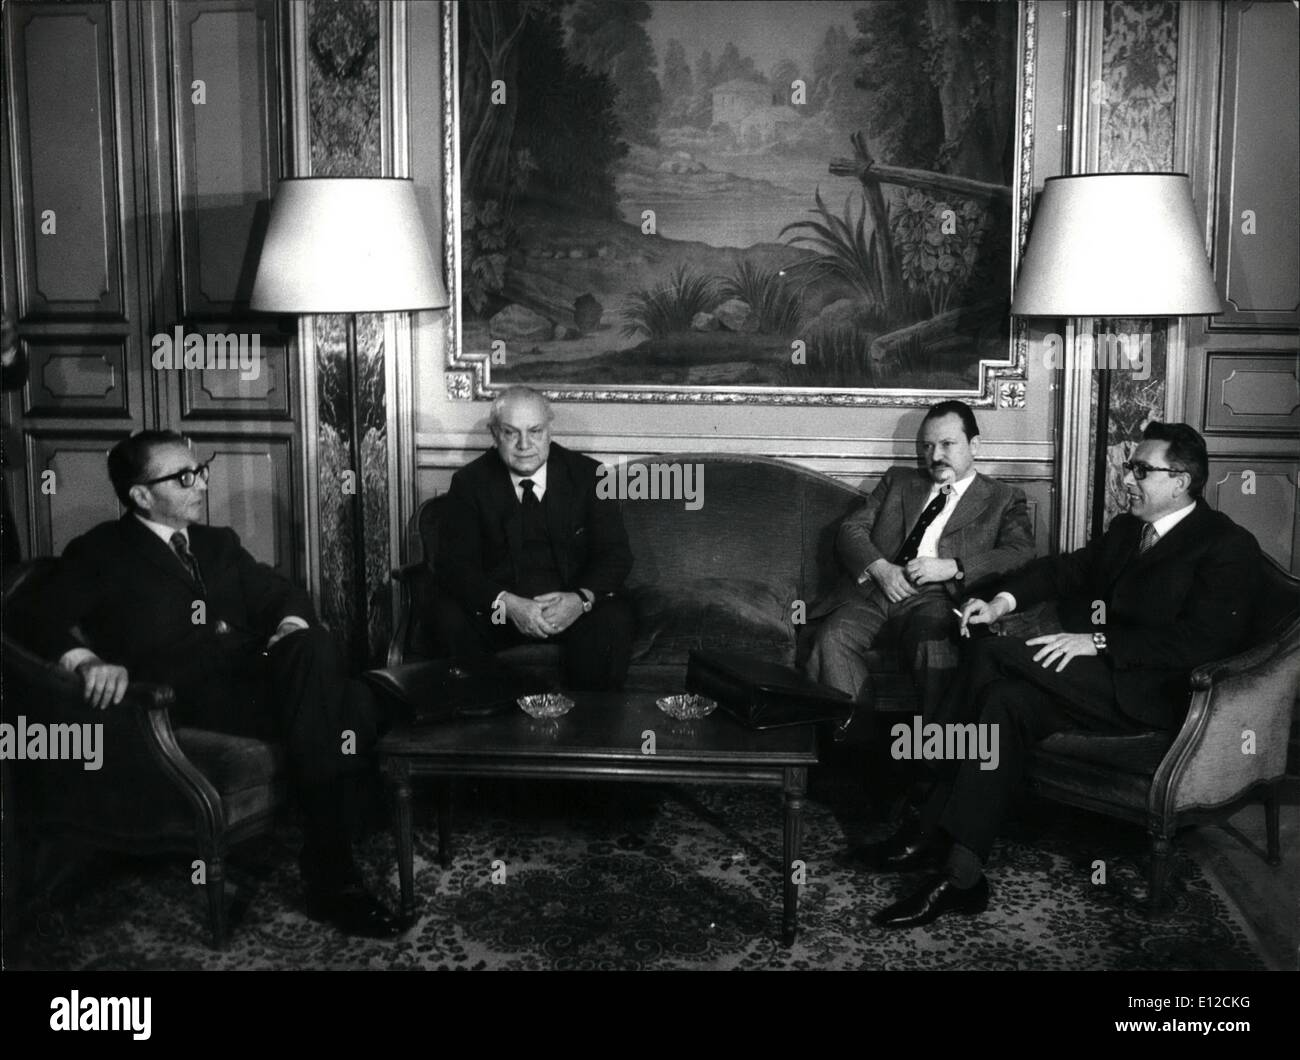 Dec. 12, 2011 - The leaders of the four democratic parties were not to try to take again the center left government coalition. they are, from left Ugo La Malfa of PRi (Republicans); Francesco De Martino of PSI (Socialists); Fauro Ferri of PSU (Unitary Socialm) and Arnaldo Forlani of DC (Christian Democrats) - Stock Image